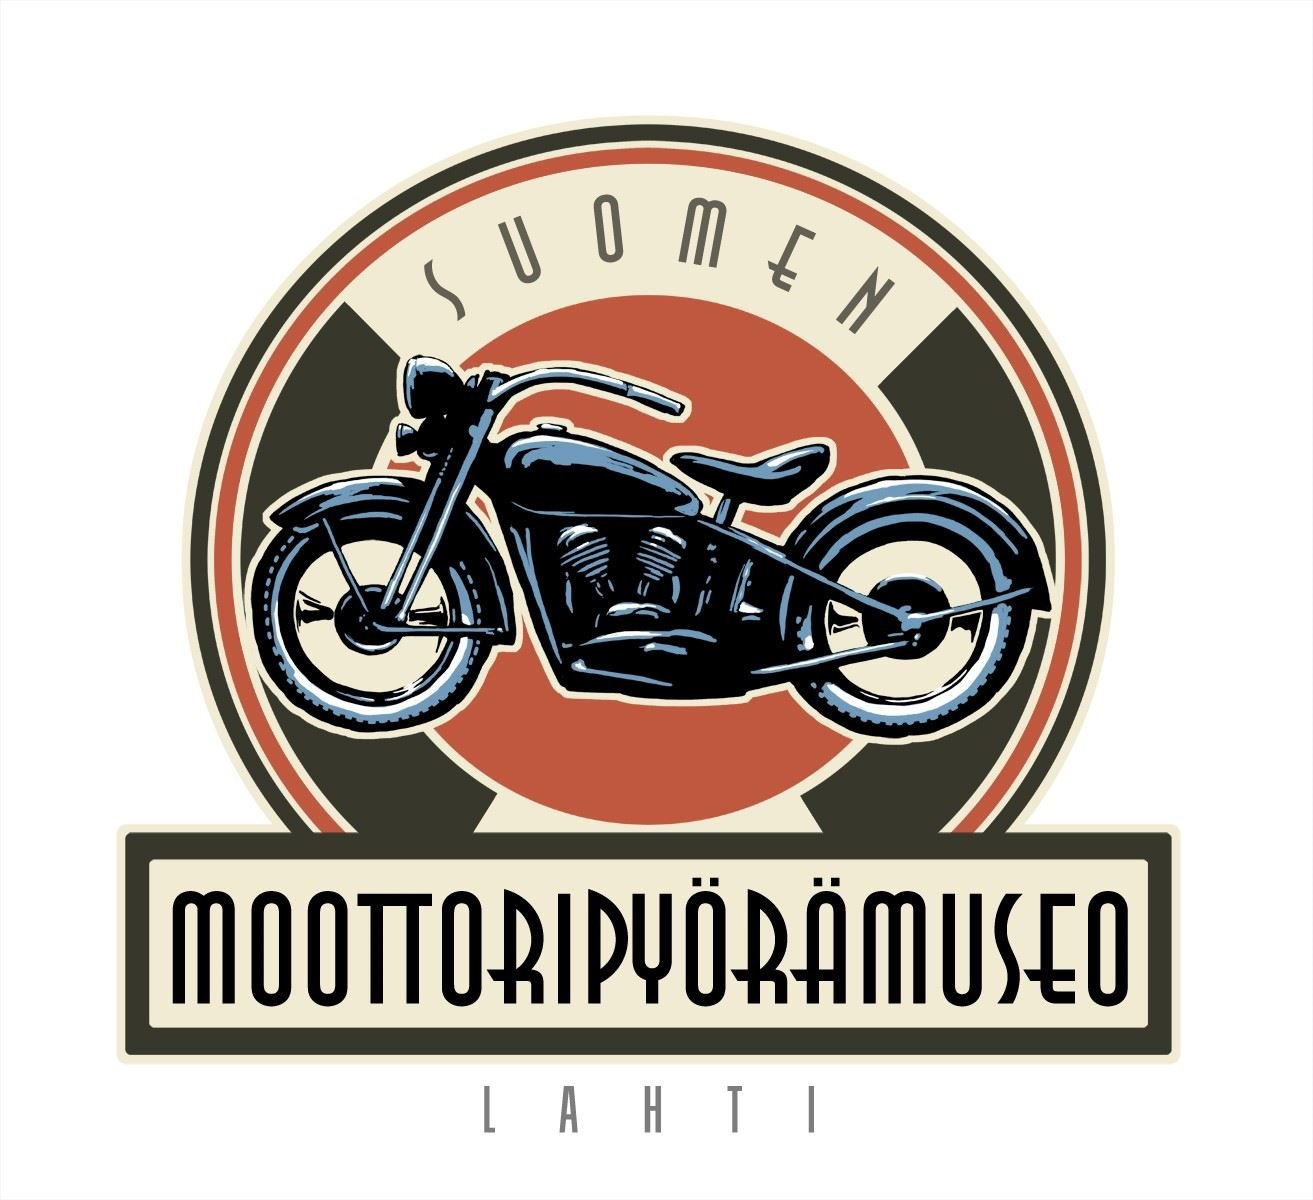 Entrance ticket to Motorcycle Museum of Finland